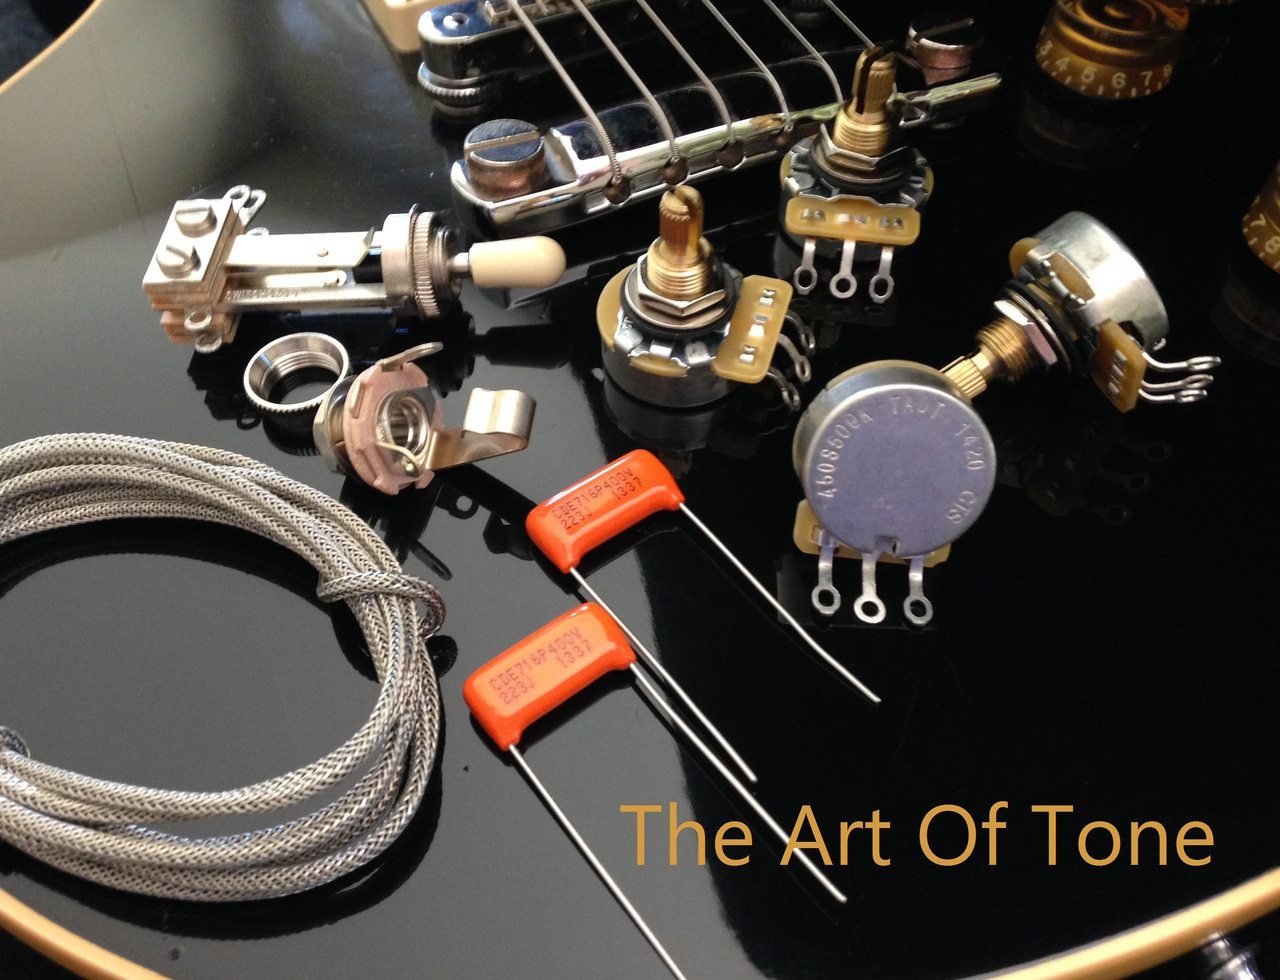 taot gibson les paul short shaft cts taot 450s 525k pots les paul wiring kit les paul wiring kit [ 1280 x 980 Pixel ]